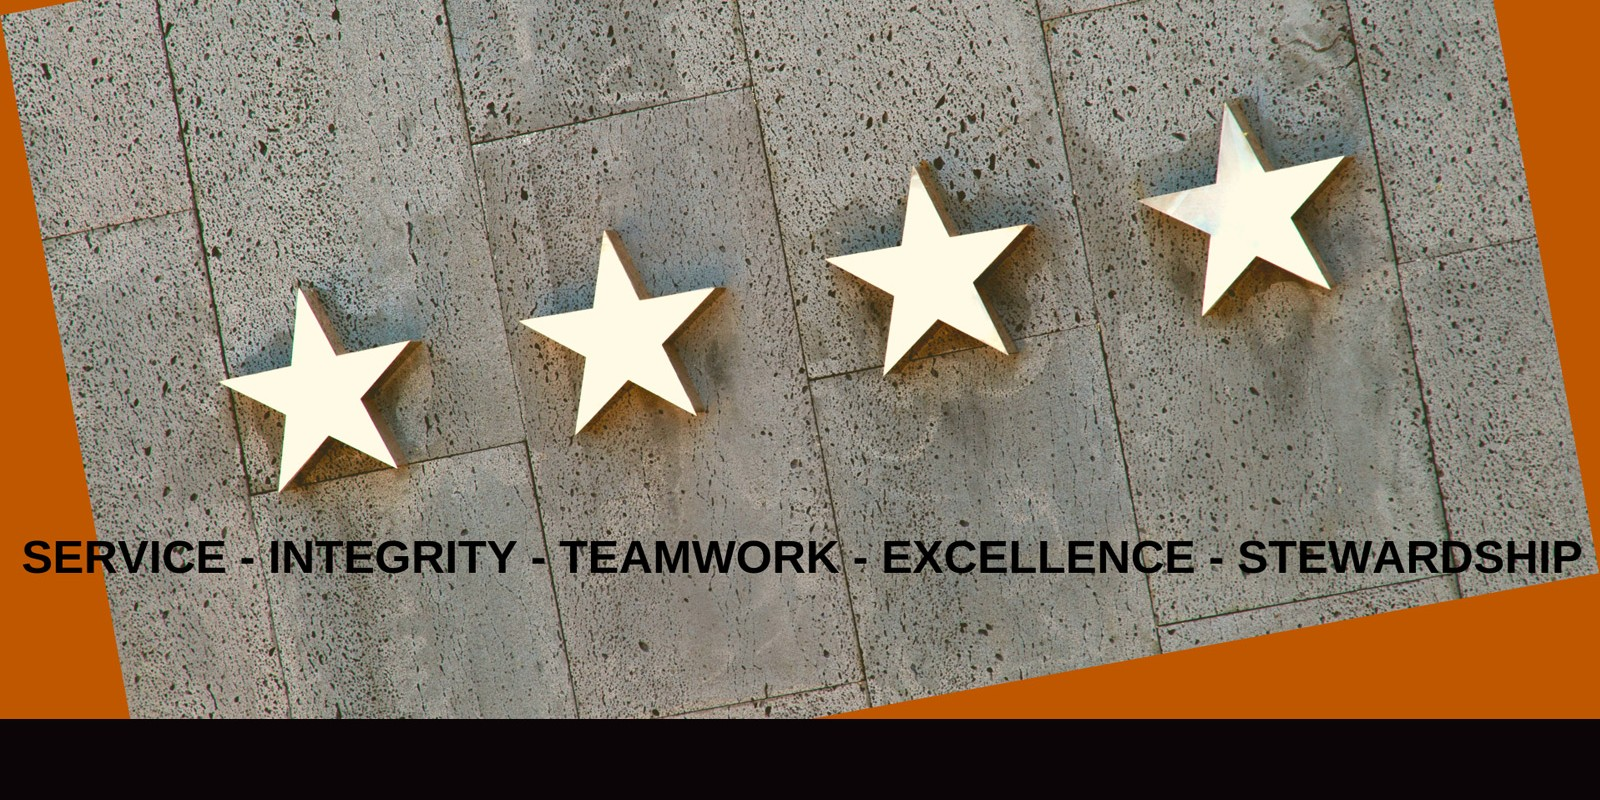 proud to serve graphic with our core values - service, teamwork, integrity, excellence, stewardship